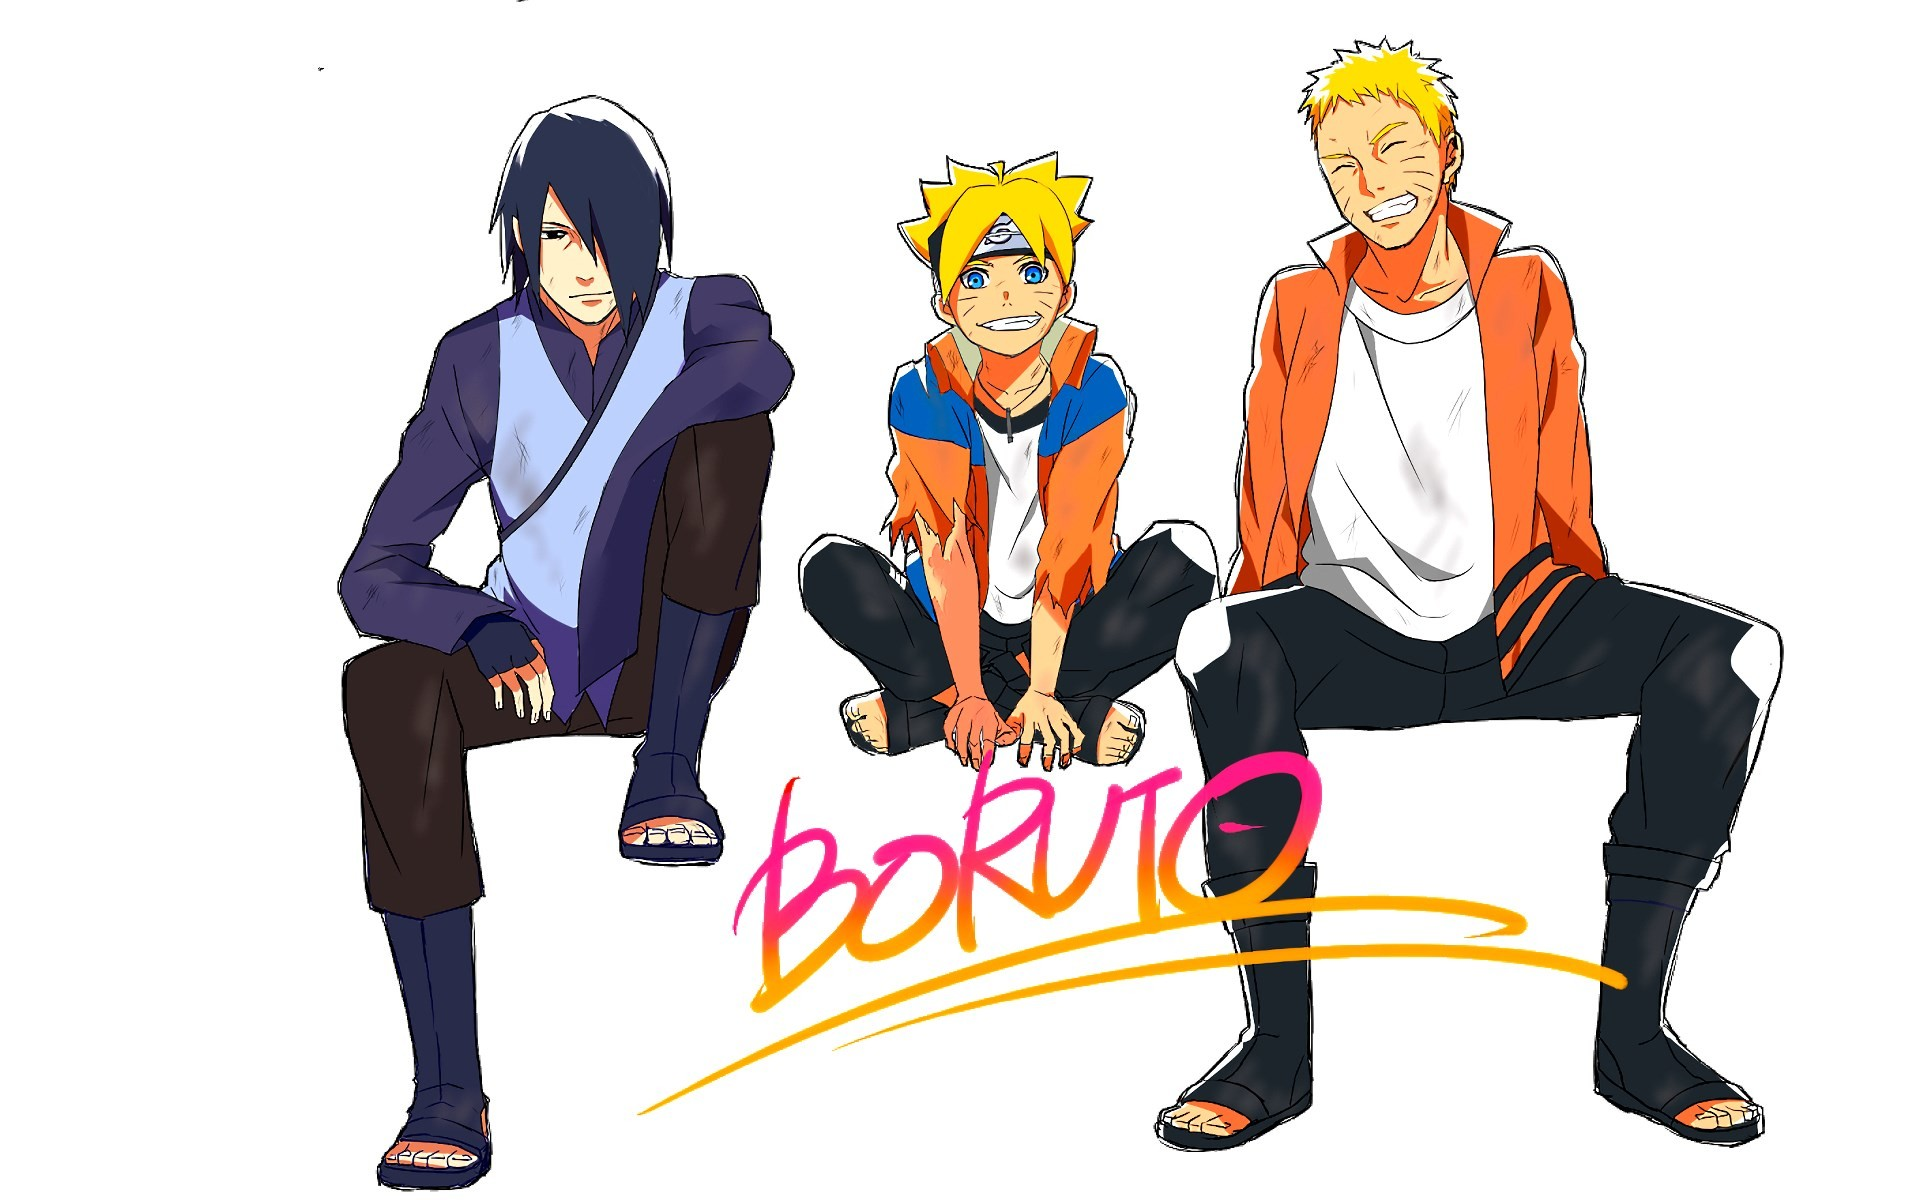 1920x1200 Full size boruto naruto the movie backround - boruto naruto the movie  category